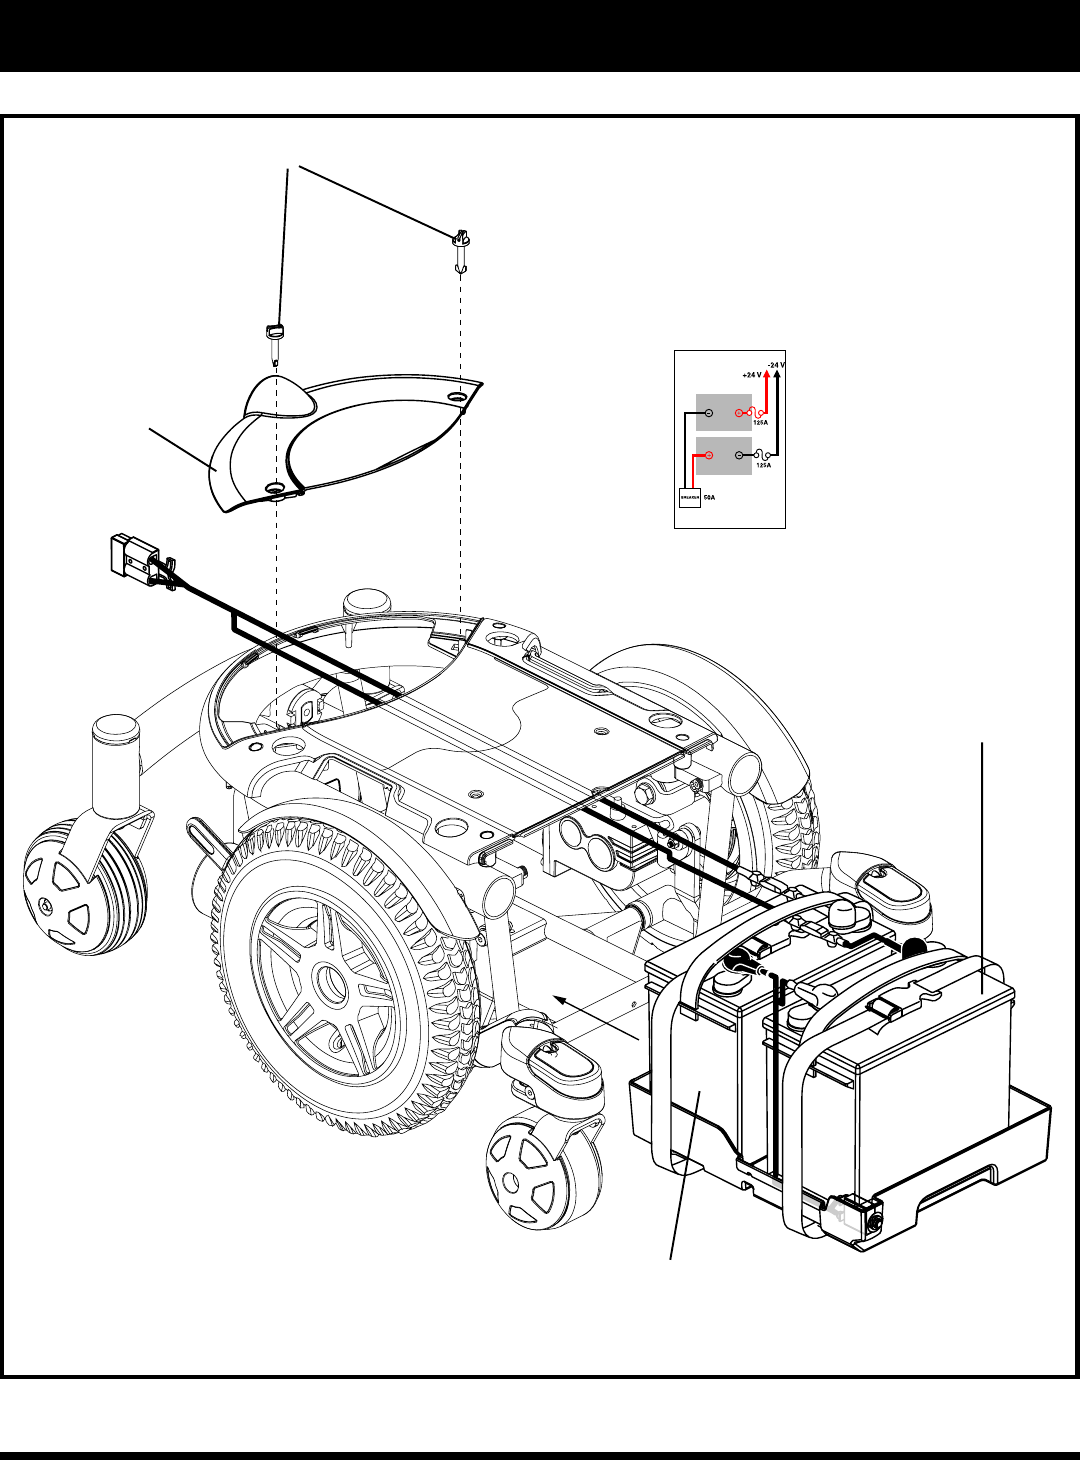 Power Chair Wiring Diagram besides 753 Vfd Wiring Diagram besides Microphone Cartridge Wiring Diagram Doesnt Work likewise Gm Xenon Wiring Diagram in addition Suzuki 230 Engine Diagram. on powerflex 755 wiring diagrams